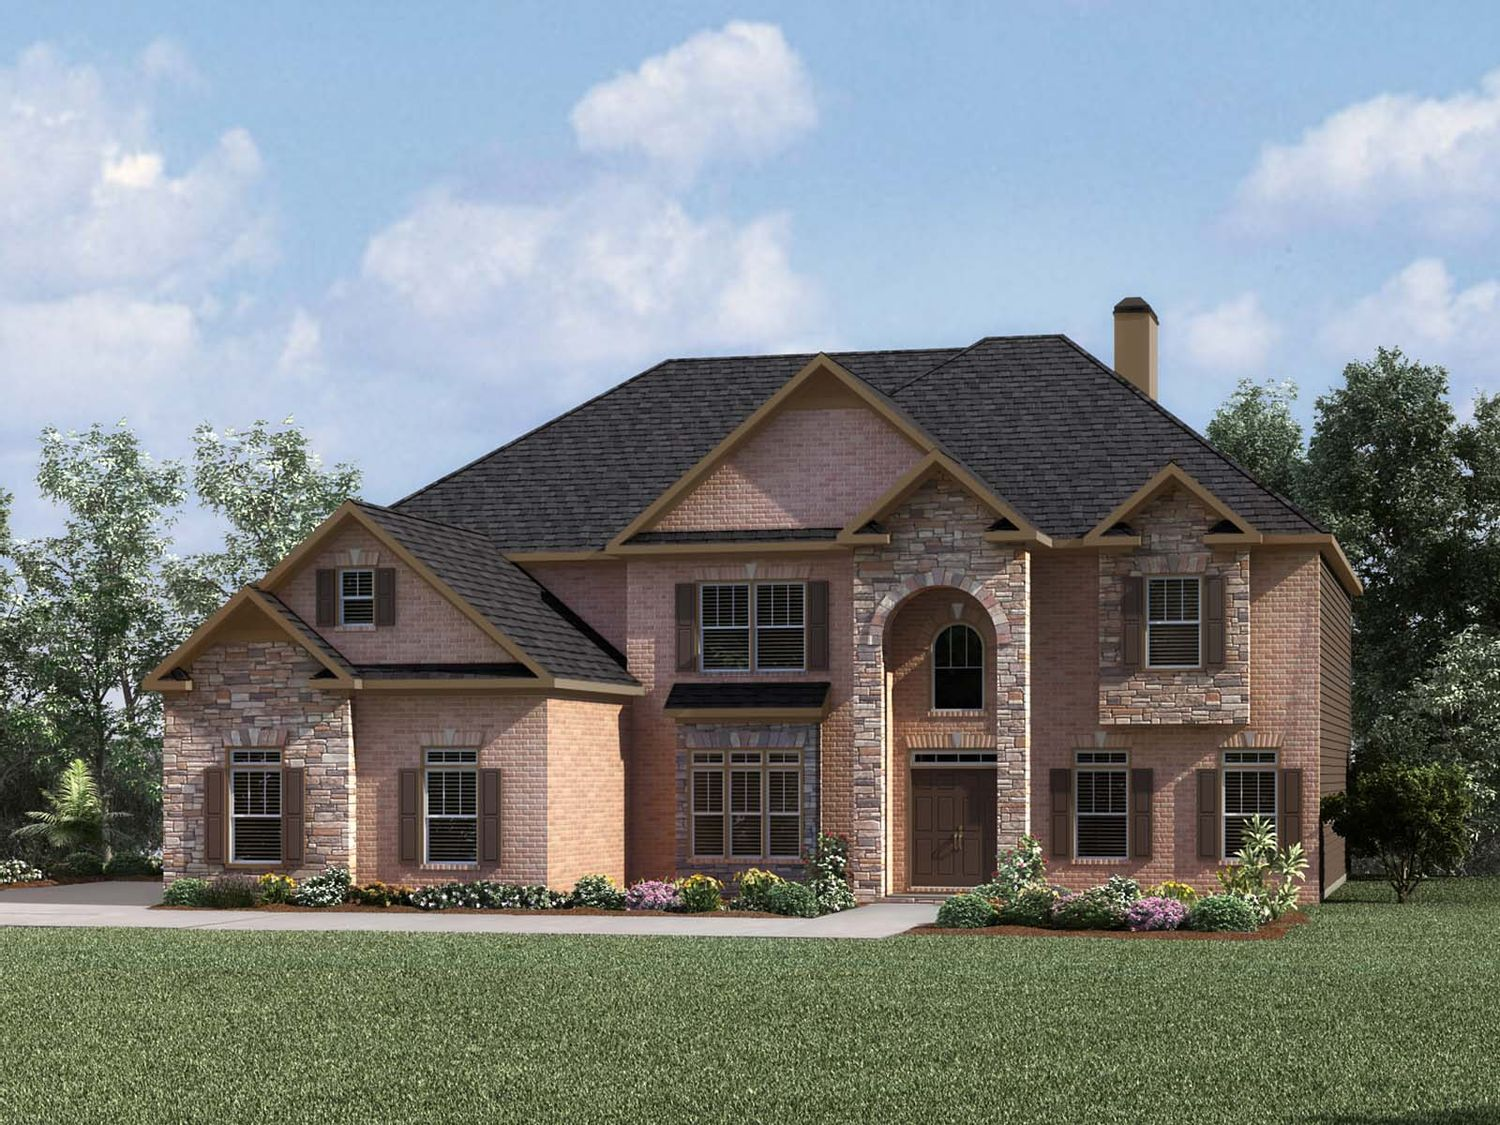 Single Family for Sale at Hillside At Riverstone Plantation - Chatsworth 8210 Post Oak Lane Gainesville, Georgia 30506 United States